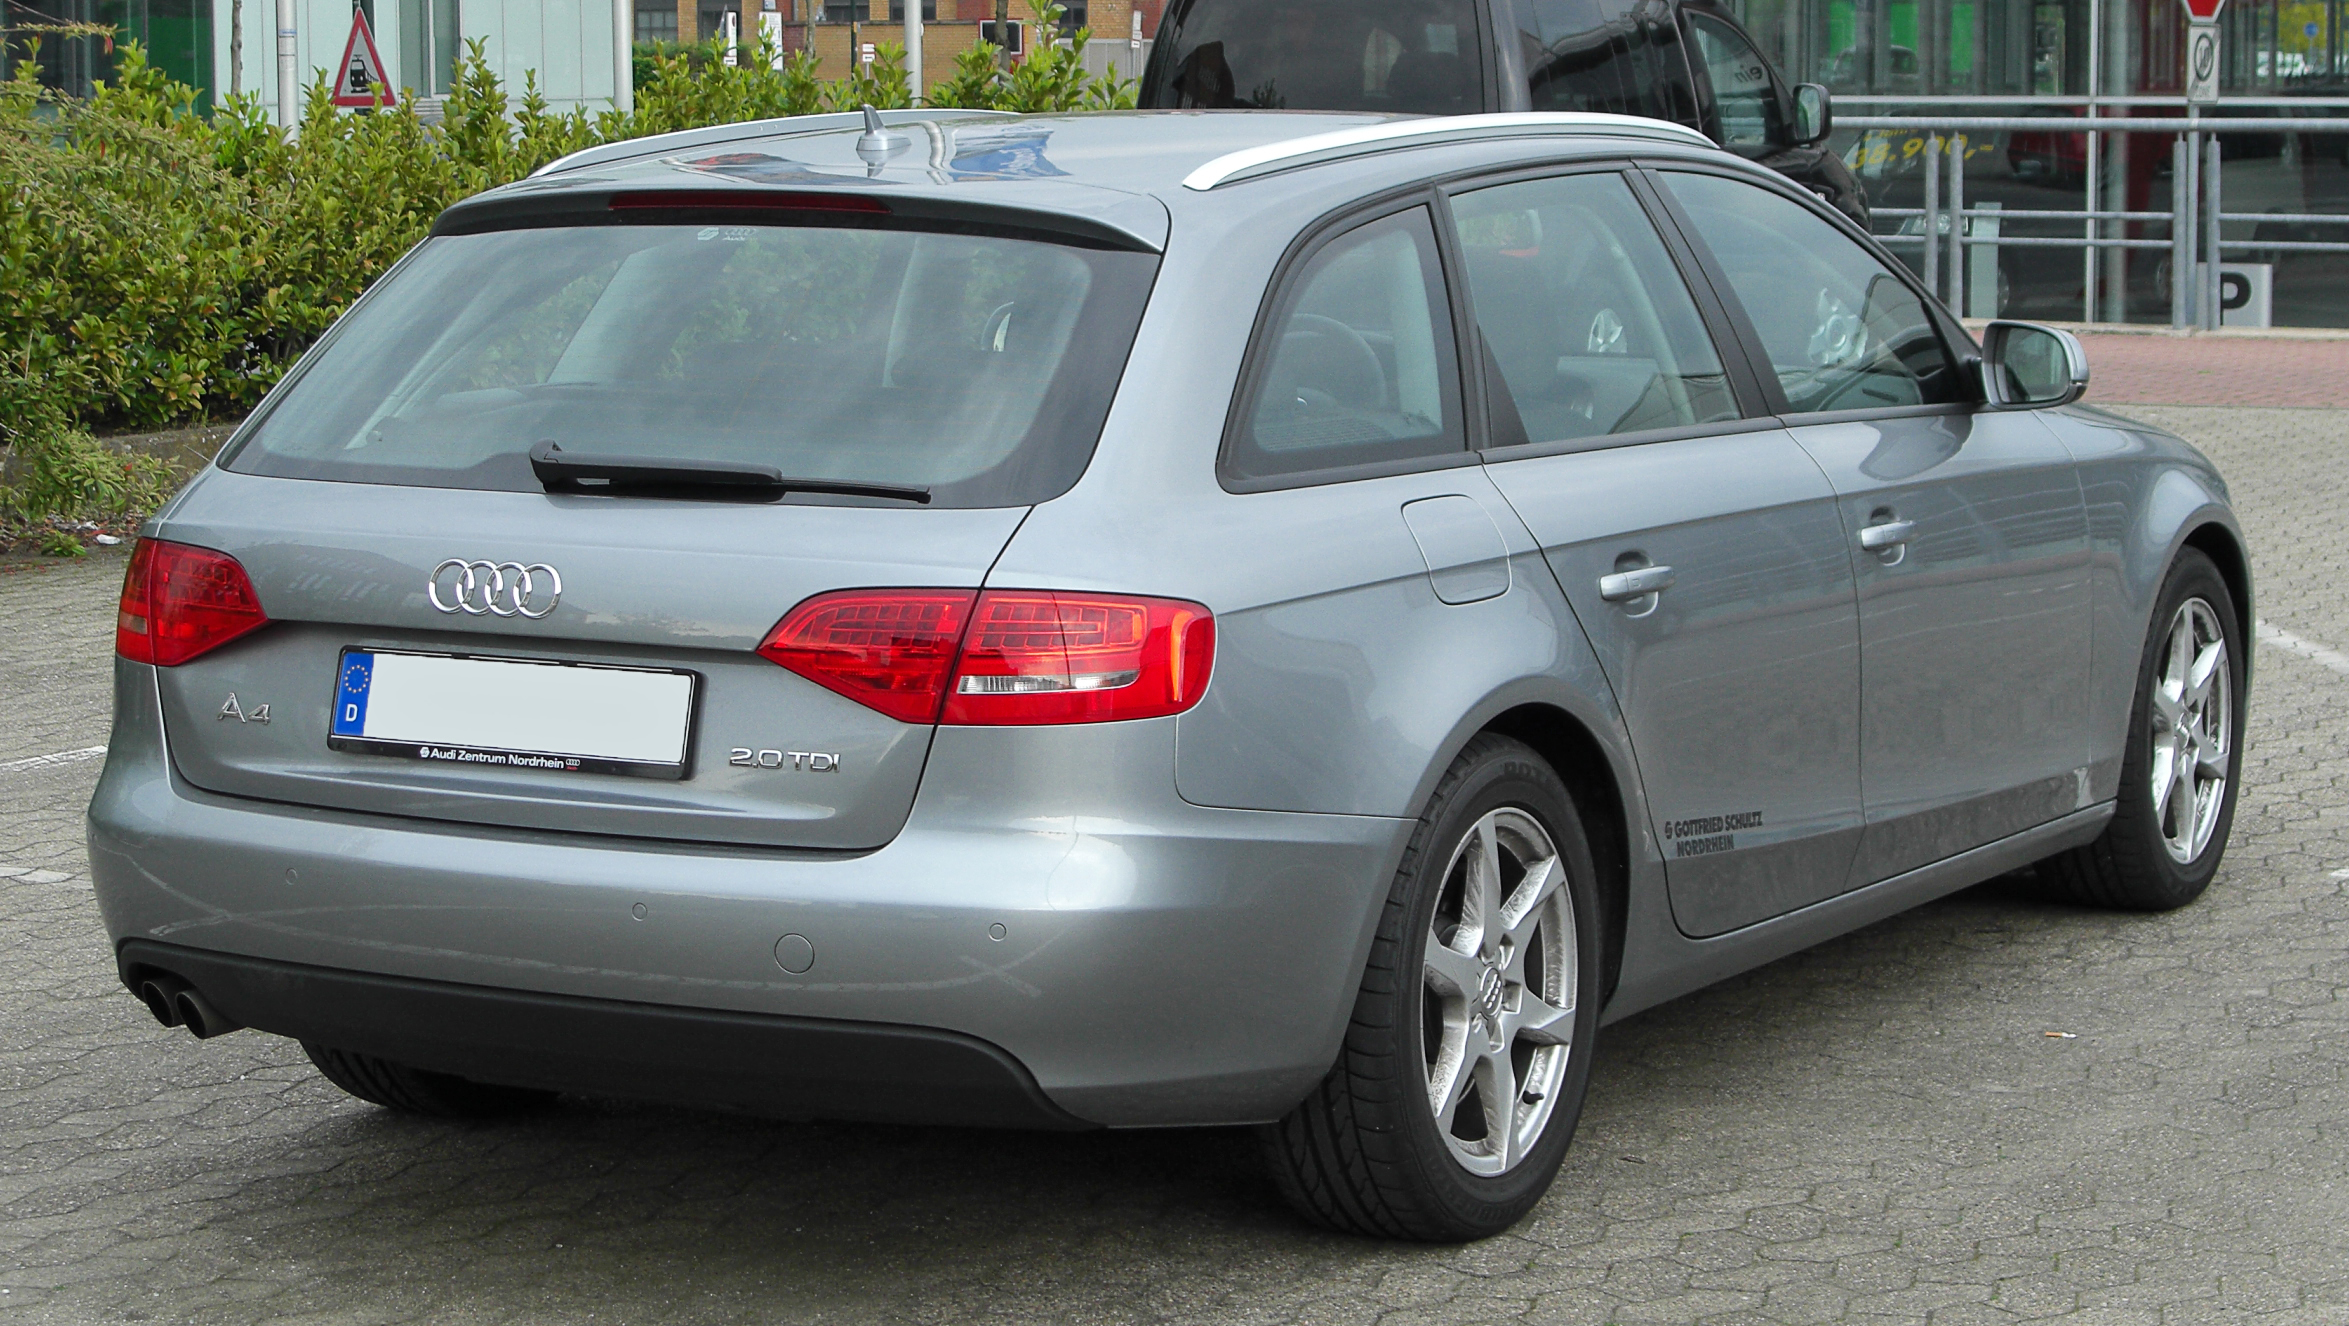 file audi a4 avant 2 0 tdi b8 rear wikipedia. Black Bedroom Furniture Sets. Home Design Ideas